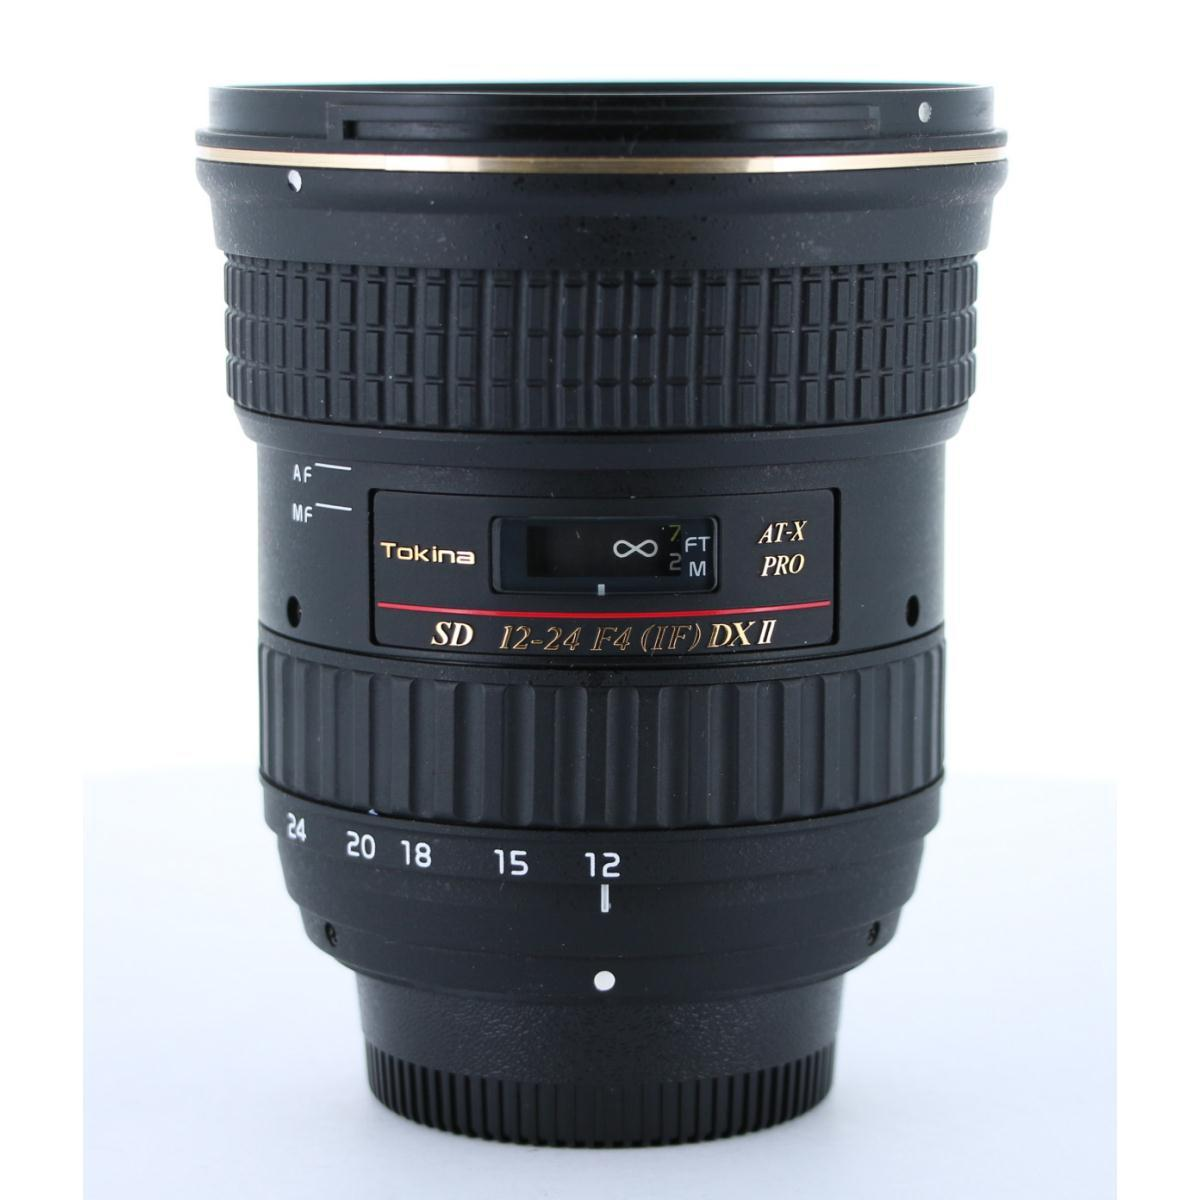 TOKINA ニコン12-24mm F4PRO DXII【中古】